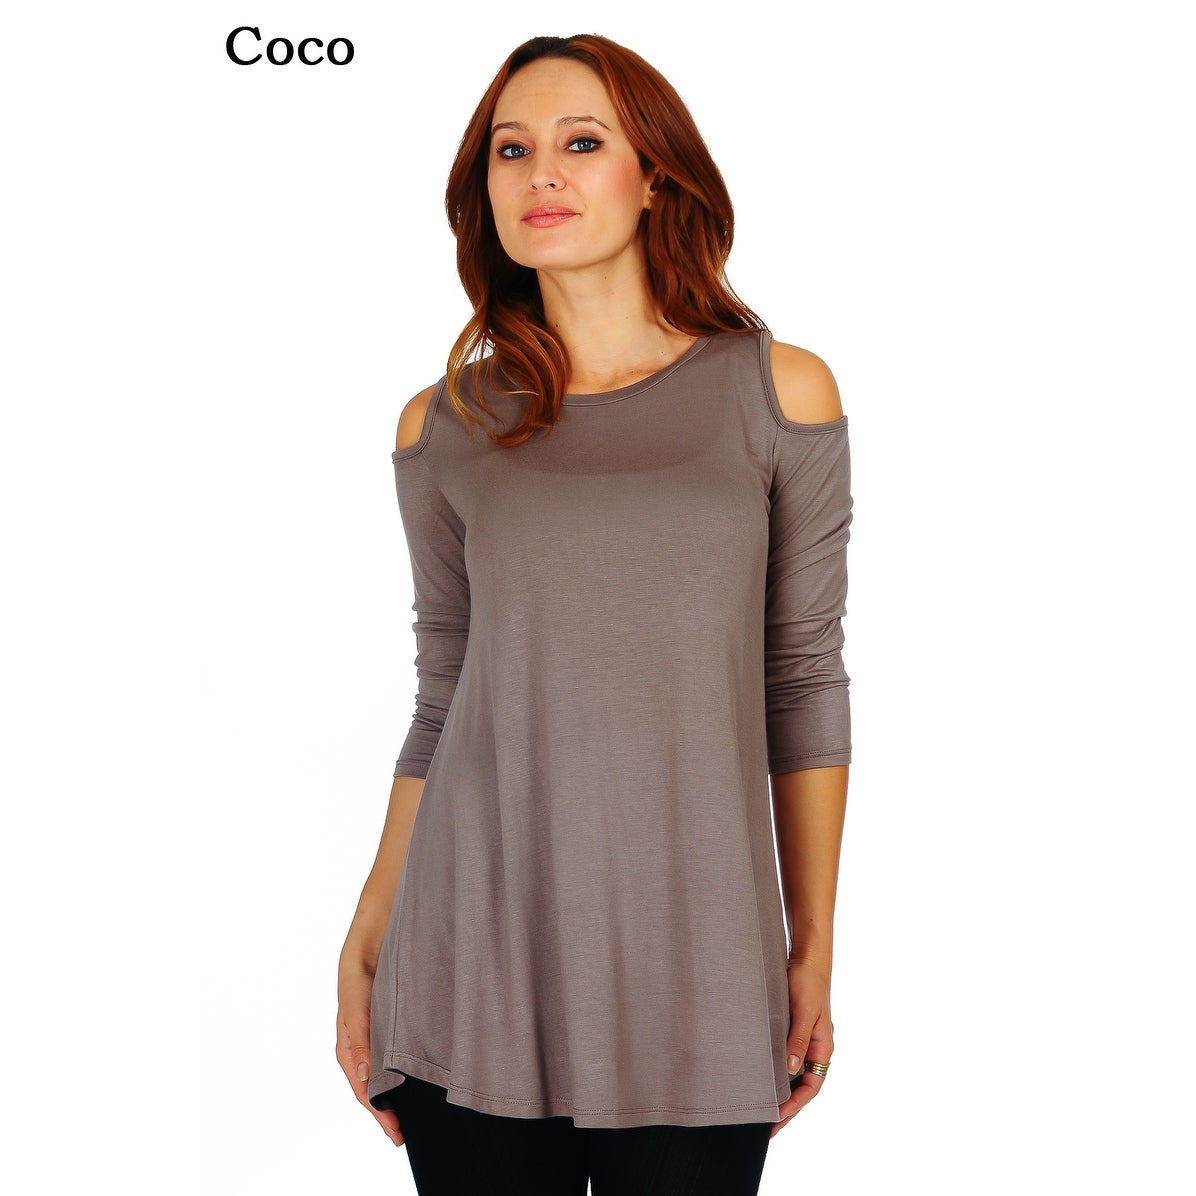 28358d2f6a Wine Stained Blouse Size Chart